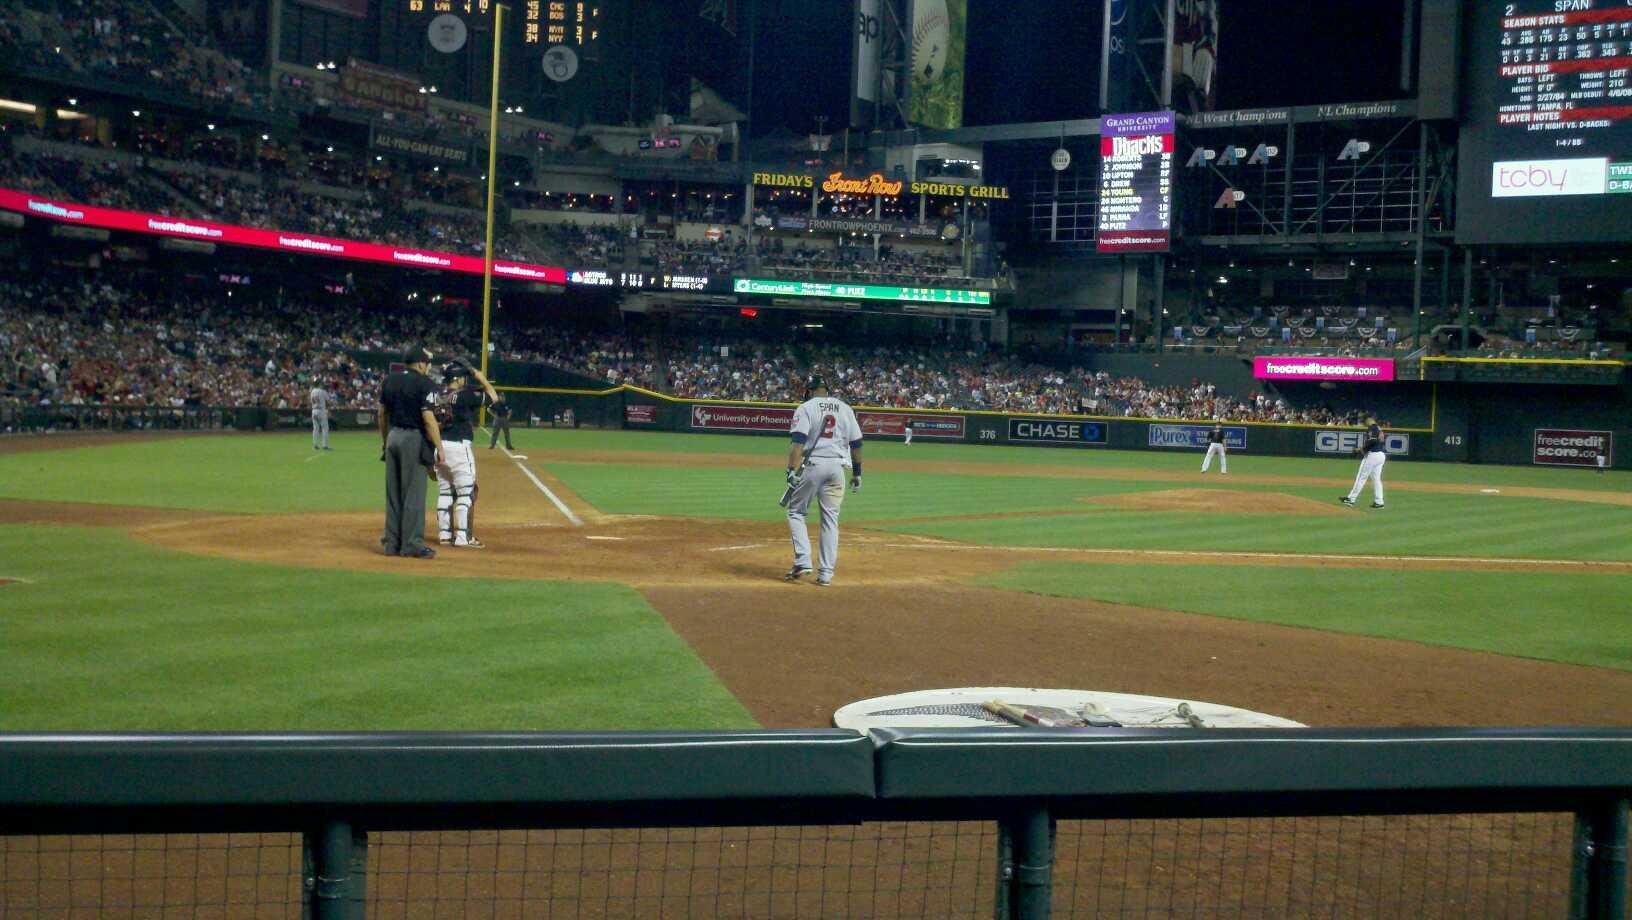 Chase Field Section h Row b Seat 6